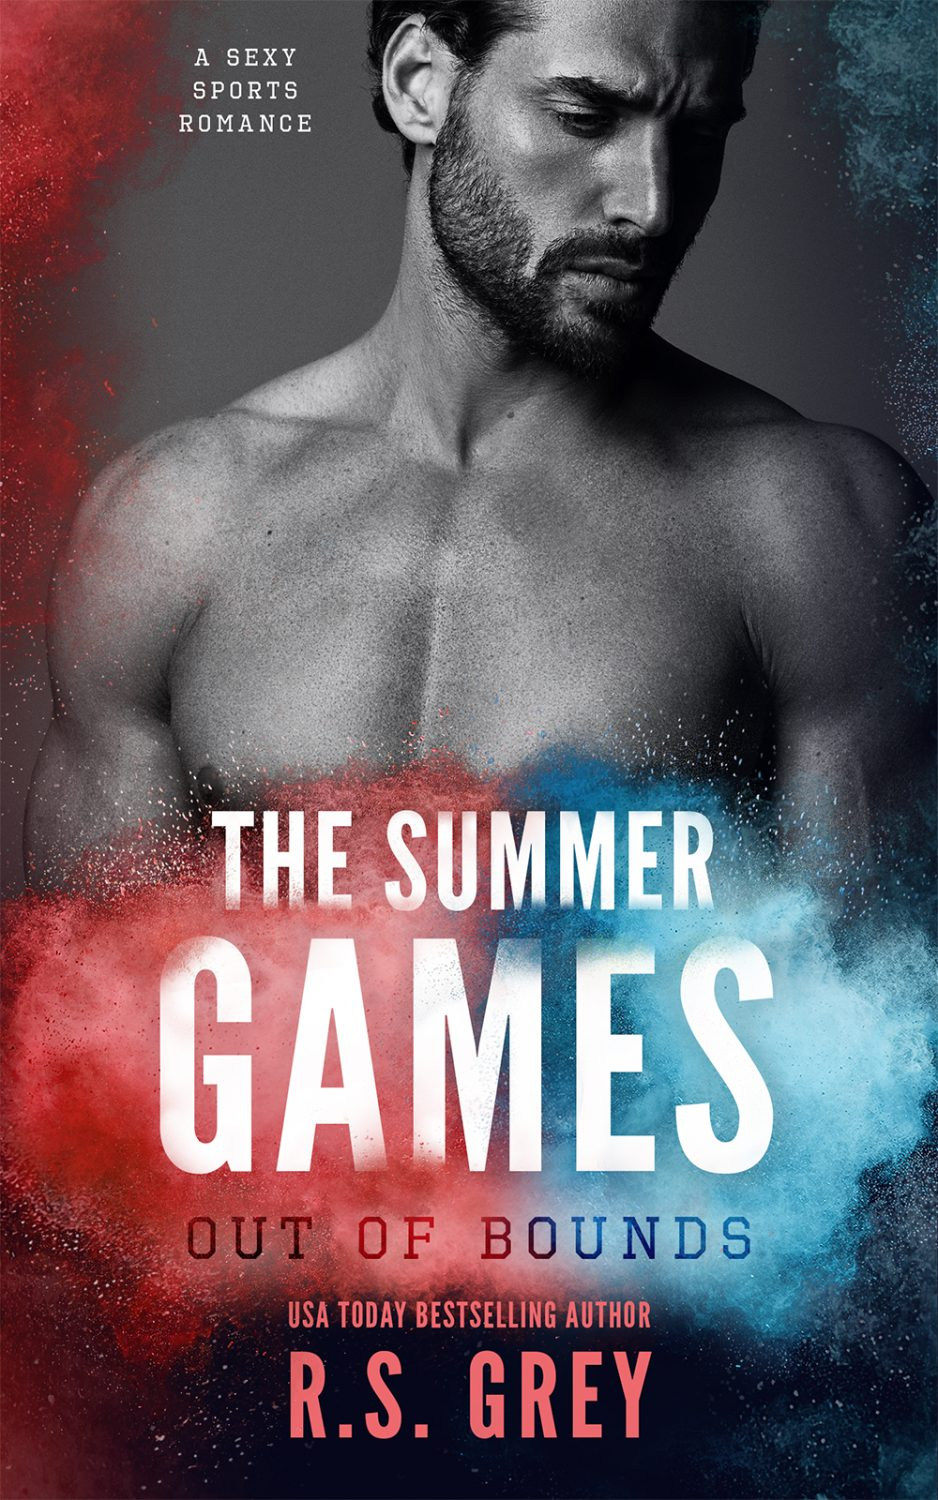 In Review: Out of Bounds (The Summer Games #2) by R.S. Grey